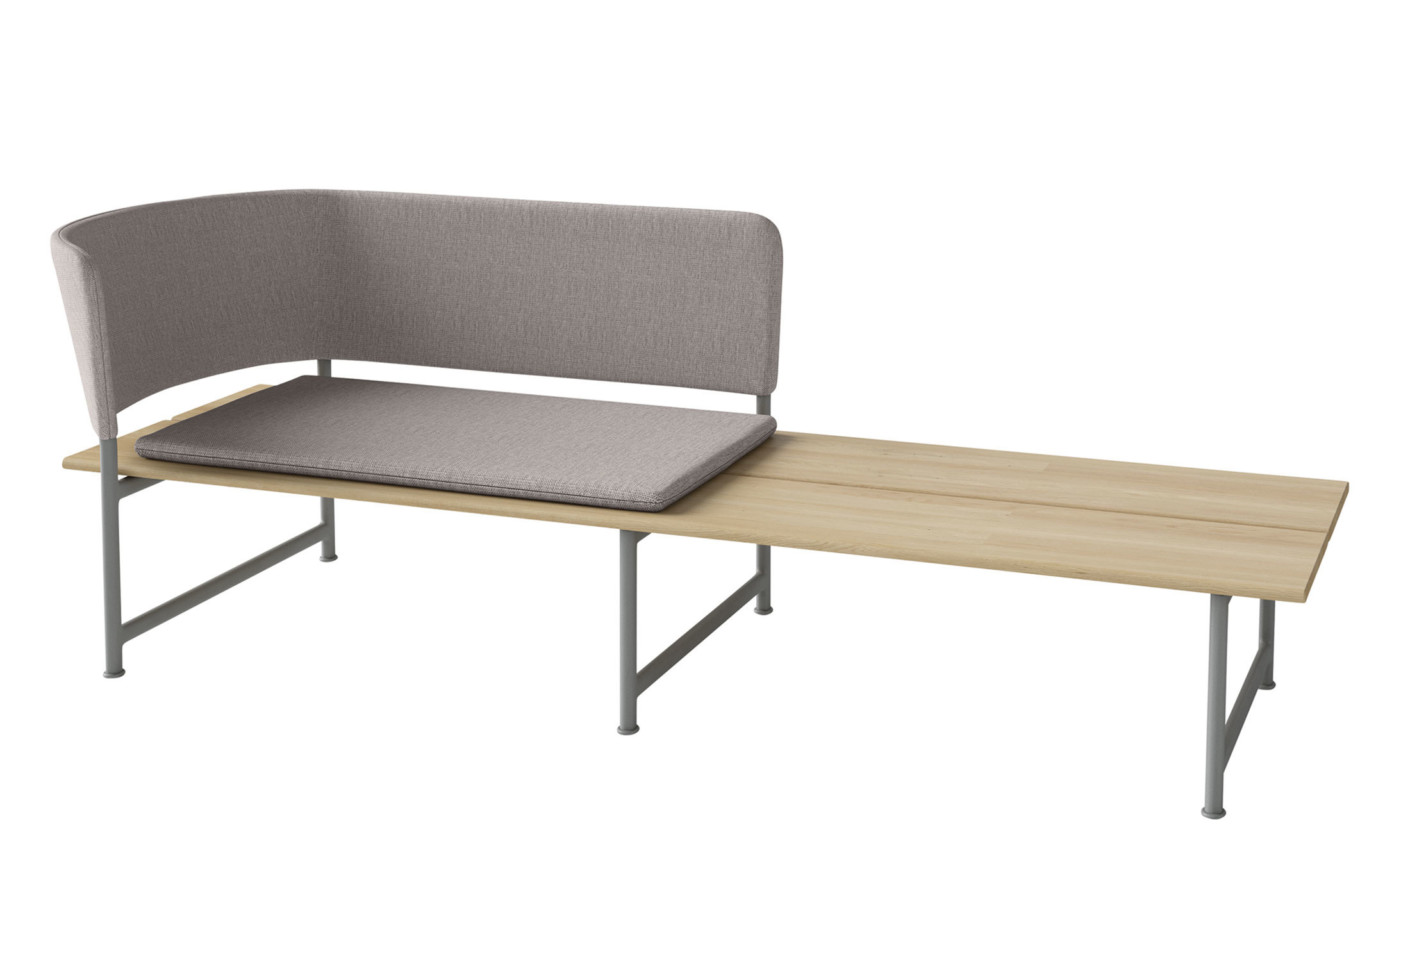 Atmosphere chaise longue by gloster furniture stylepark for Chaise longue furniture